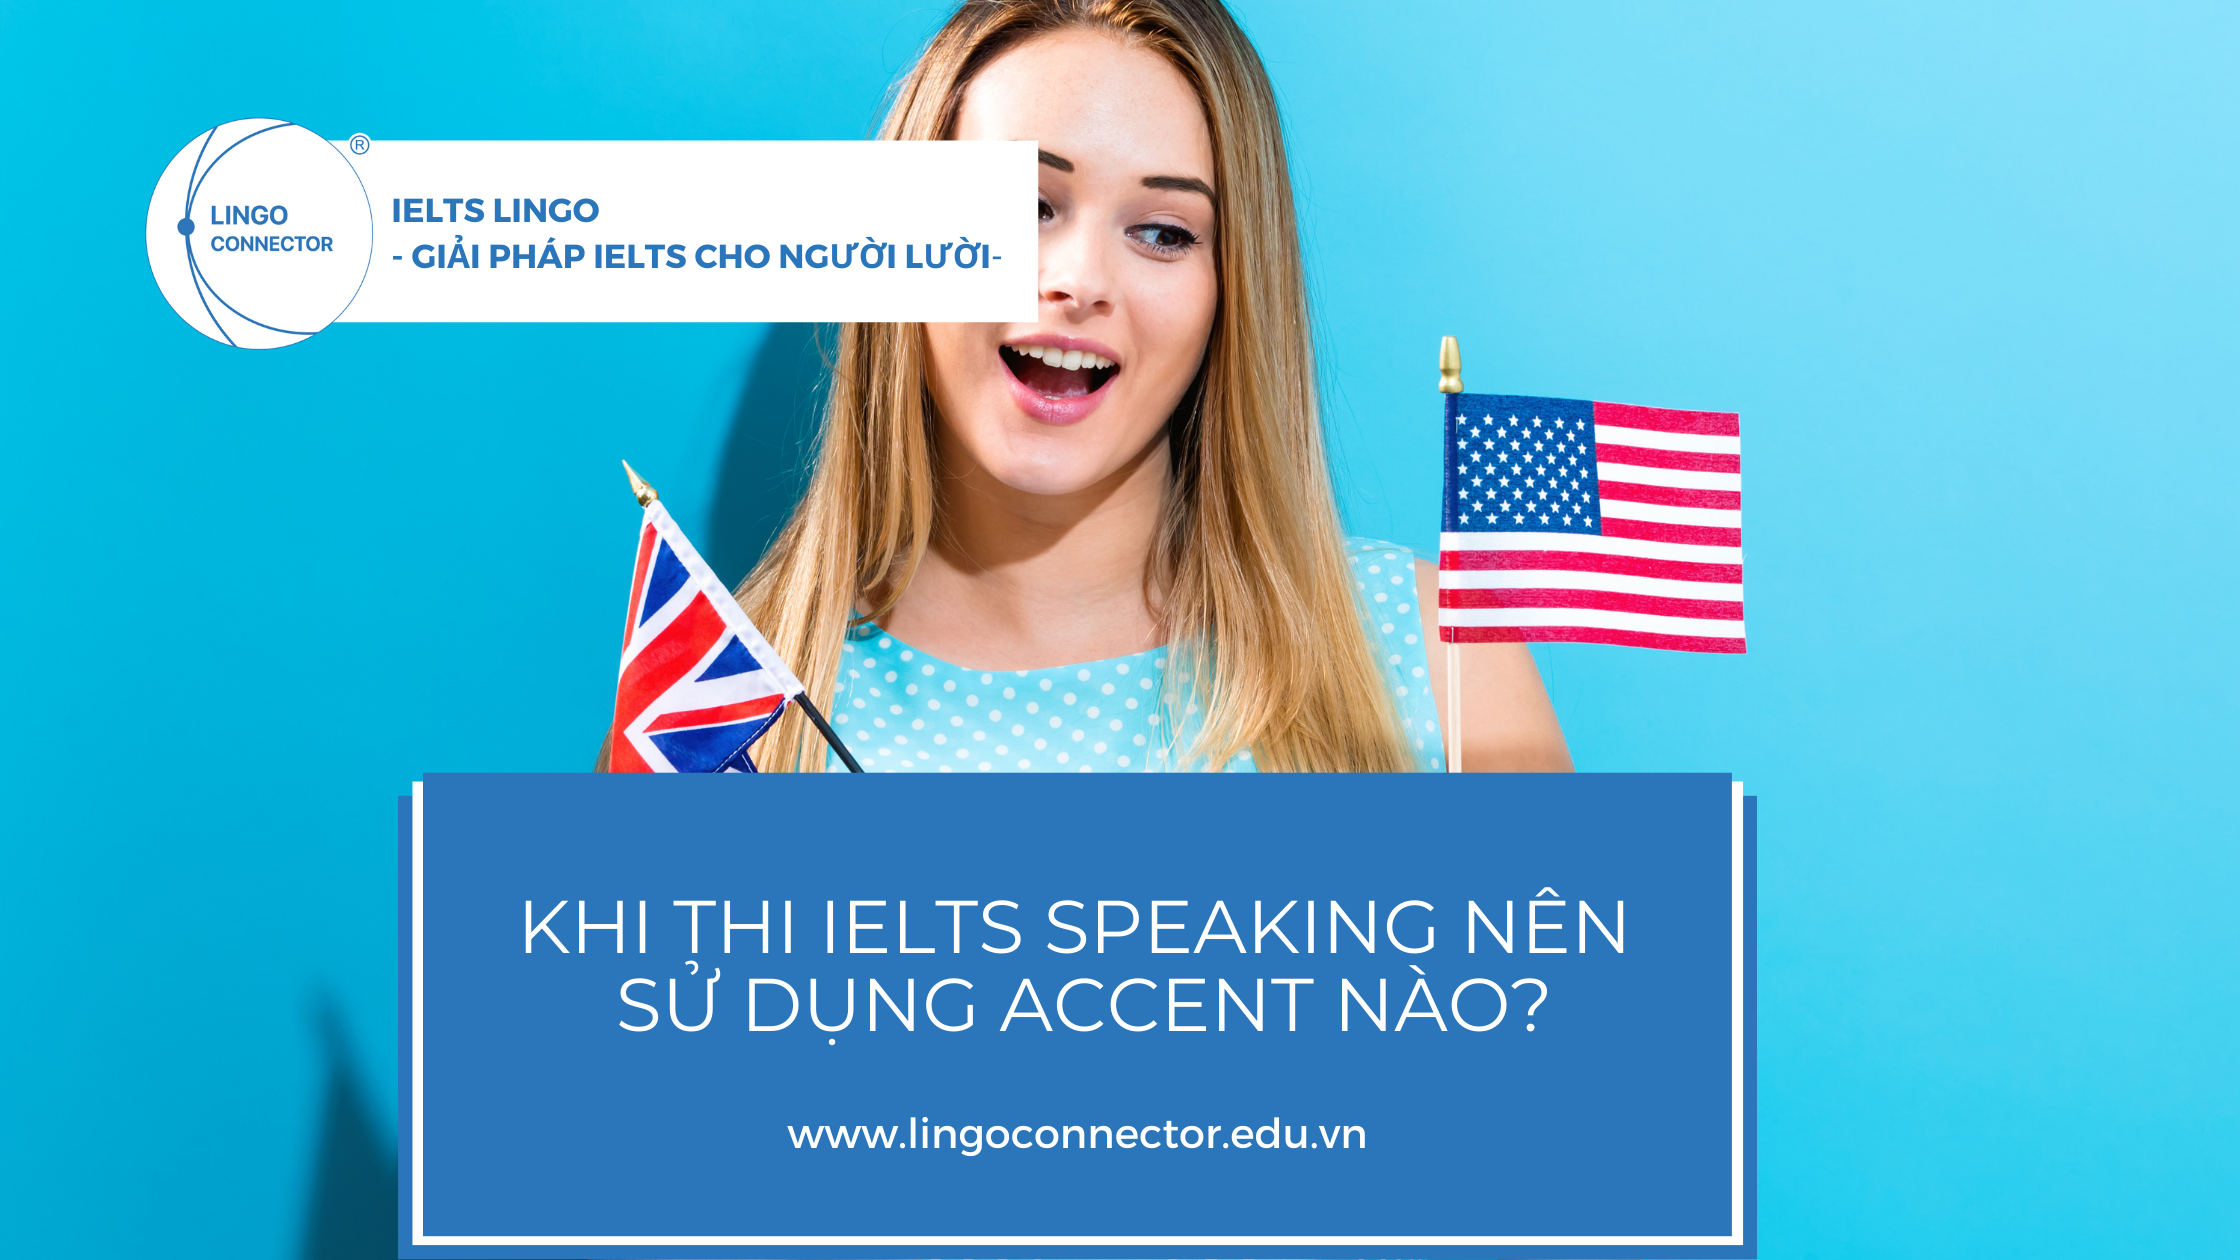 Accent khi thi speaking